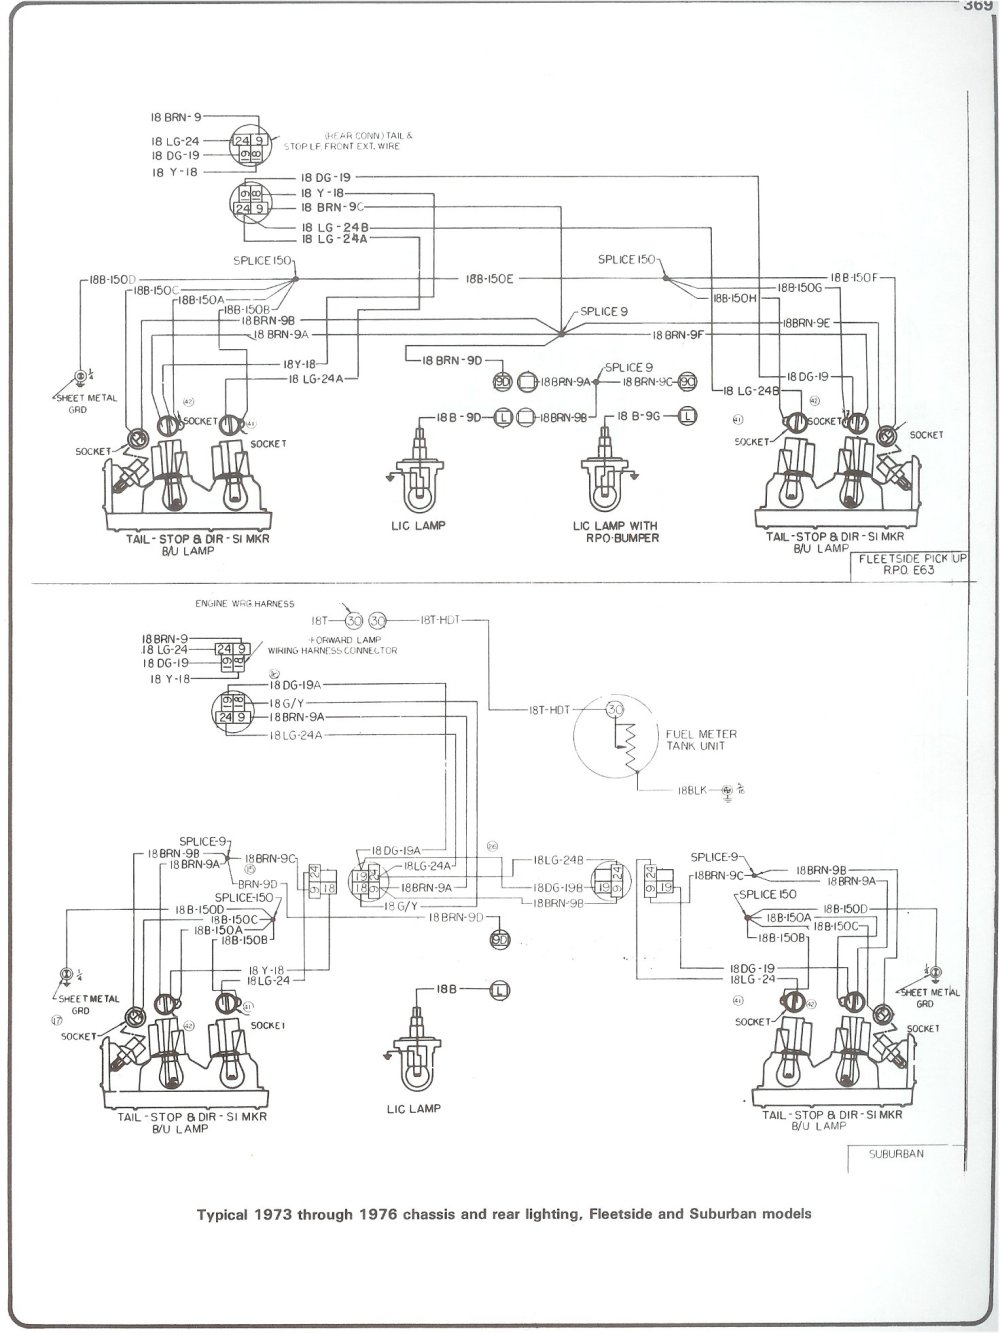 medium resolution of 75 truck wiring harness diagram wiring library 73 76 chassis rear lighting fleetside and suburban